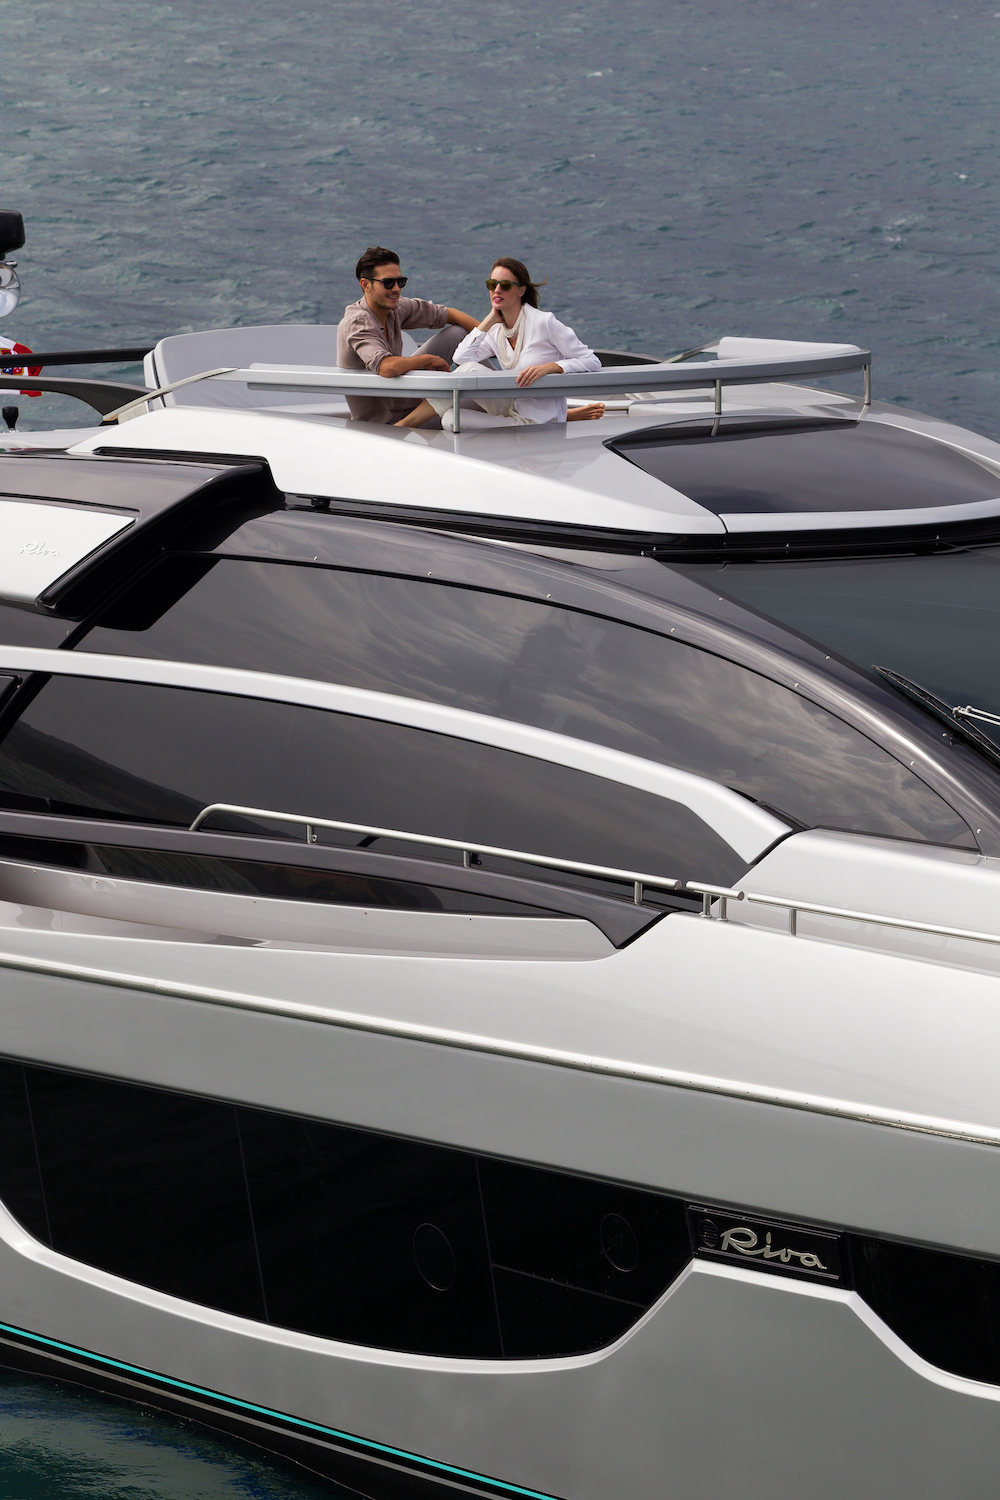 Riva 76 perseo wins the motor boat awards 2017 top yacht for Motor boat awards 2017